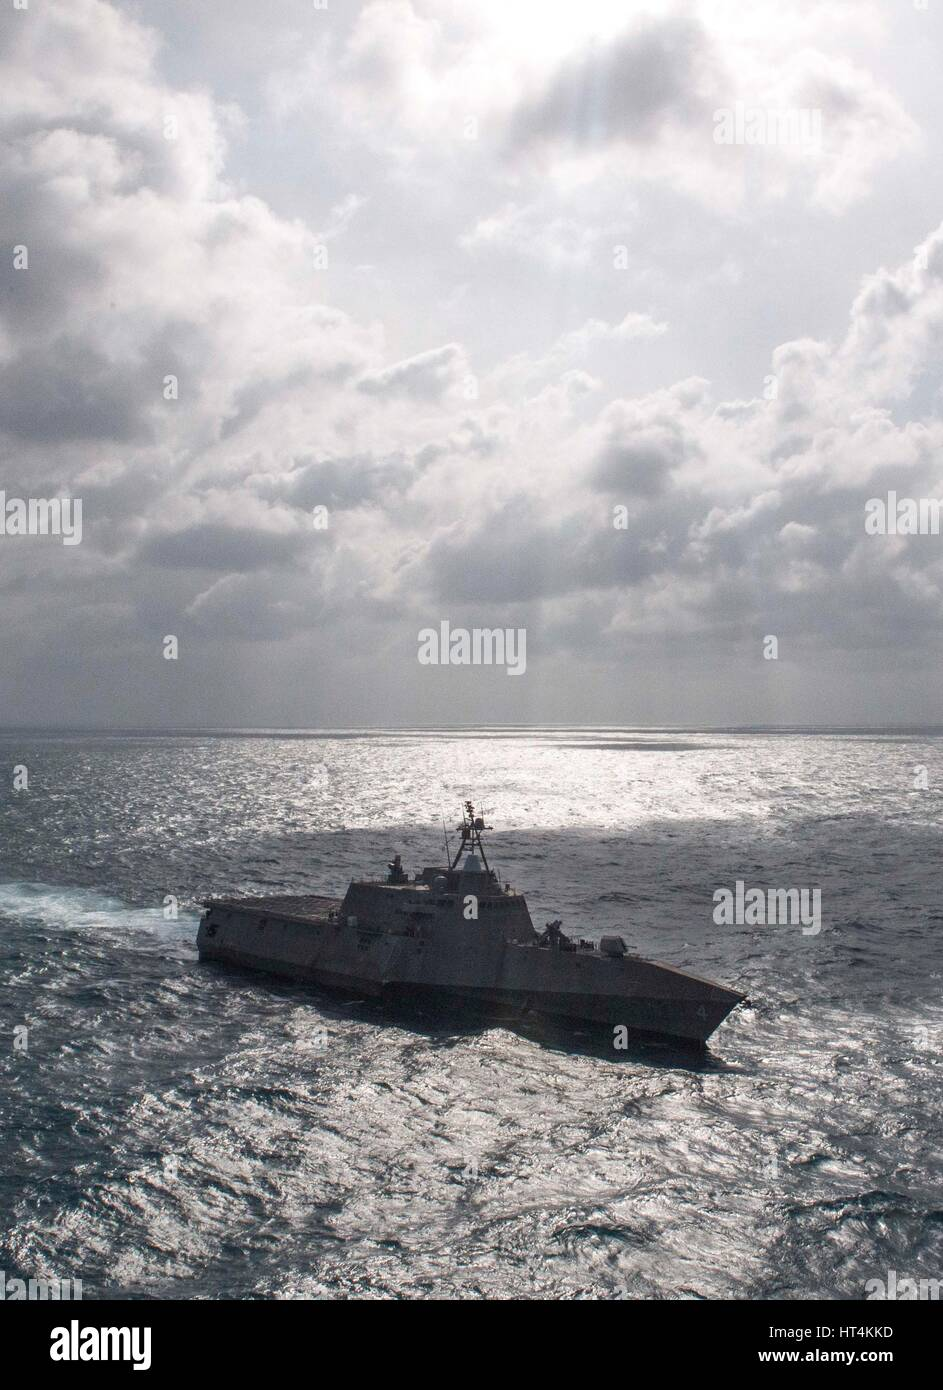 The USN Independence-class littoral combat ship USS Coronado steams underway February 12, 2017 in the South China - Stock Image